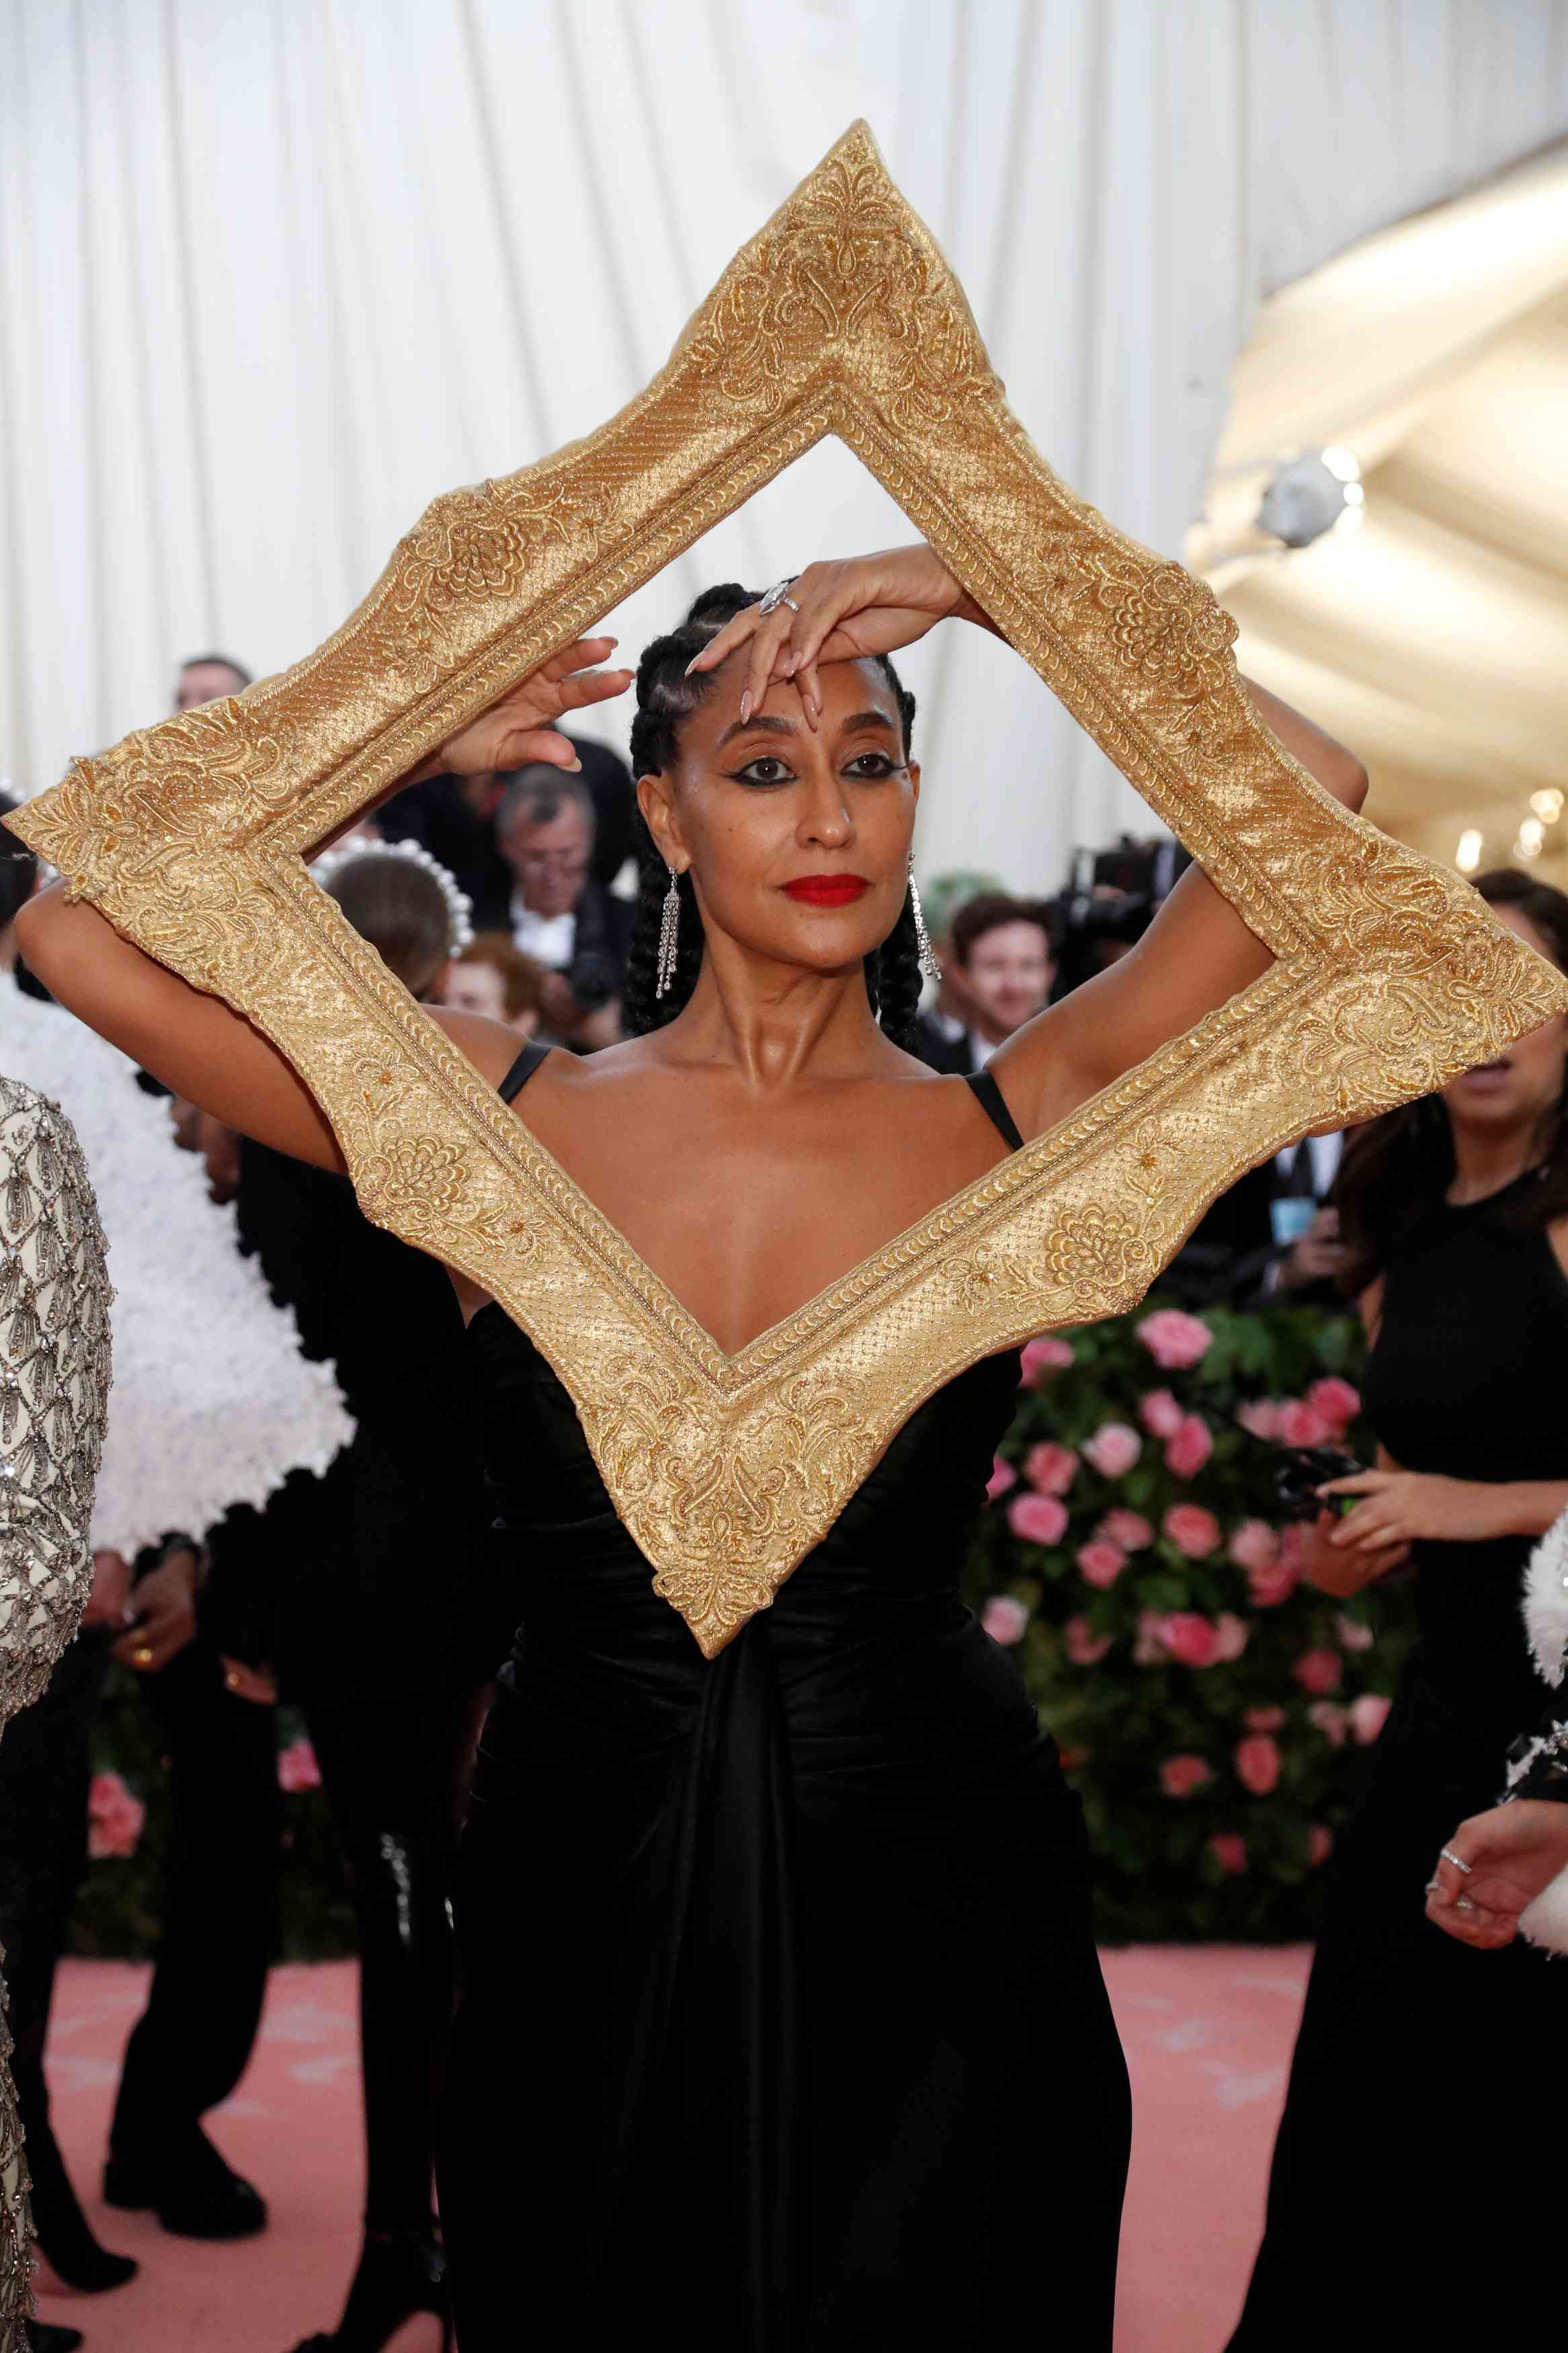 Tracee Ellis Ross at the Met Gala 2019 | Image credit: Mario Anzuoni / Reuters